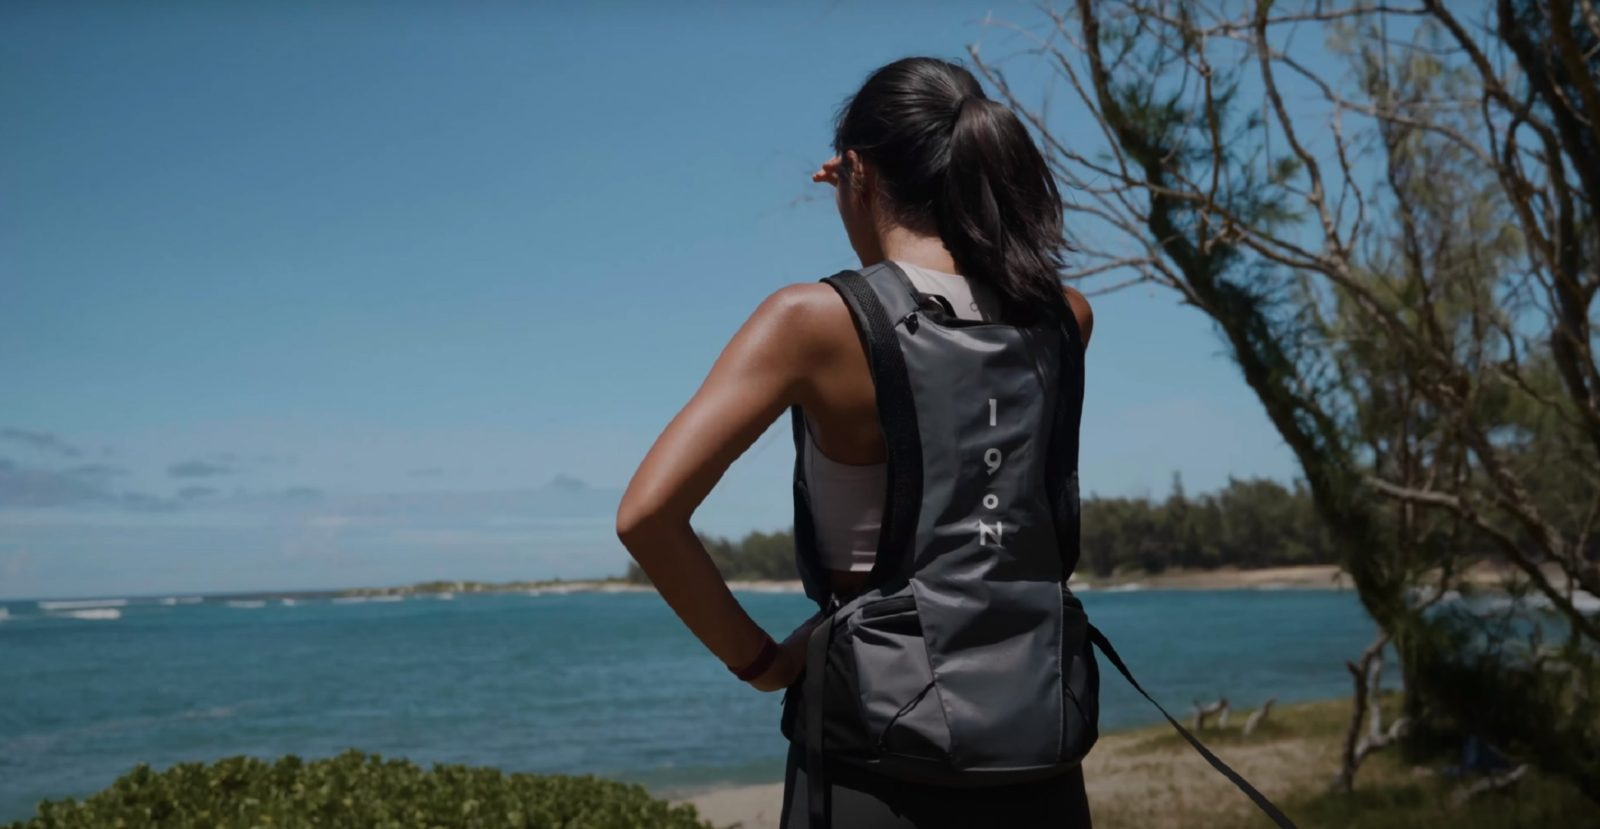 nasa-inspired-backpack-promises-to-keep-you-cool-during-the-summer